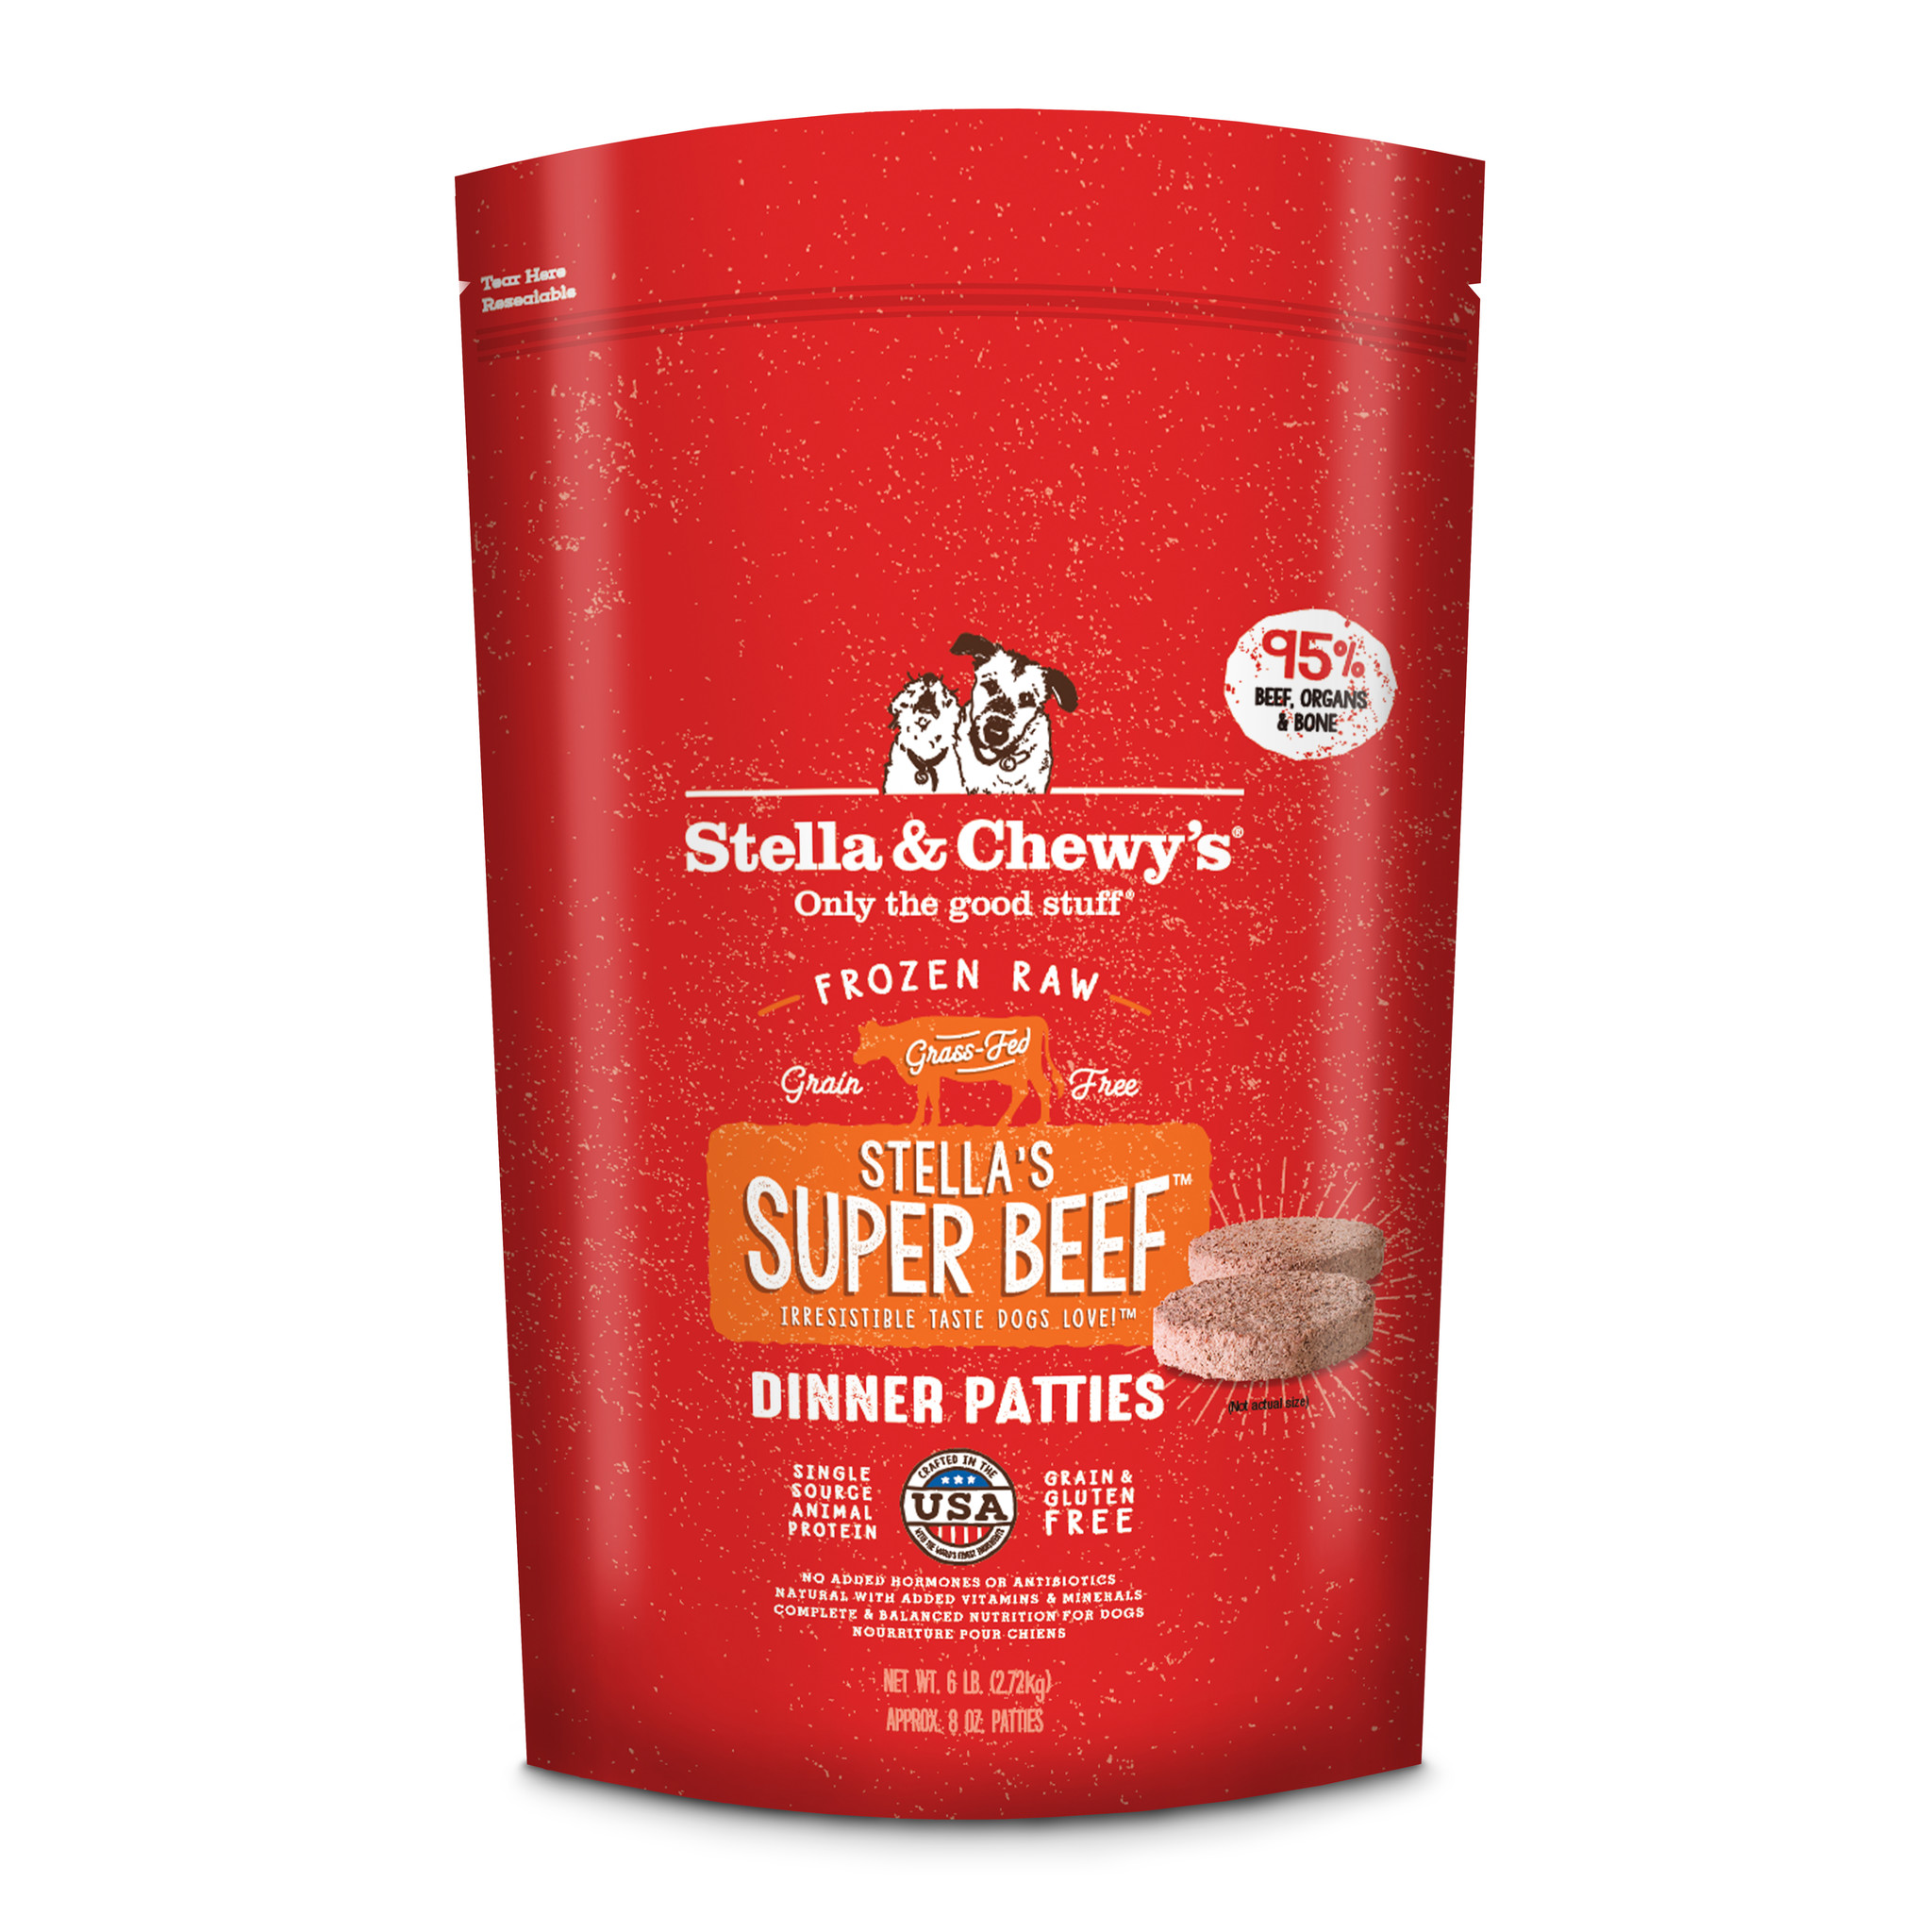 STELLA & CHEWYS STELLA & CHEWYS SUPER BEEF FROZEN RAW DINNER PATTIES